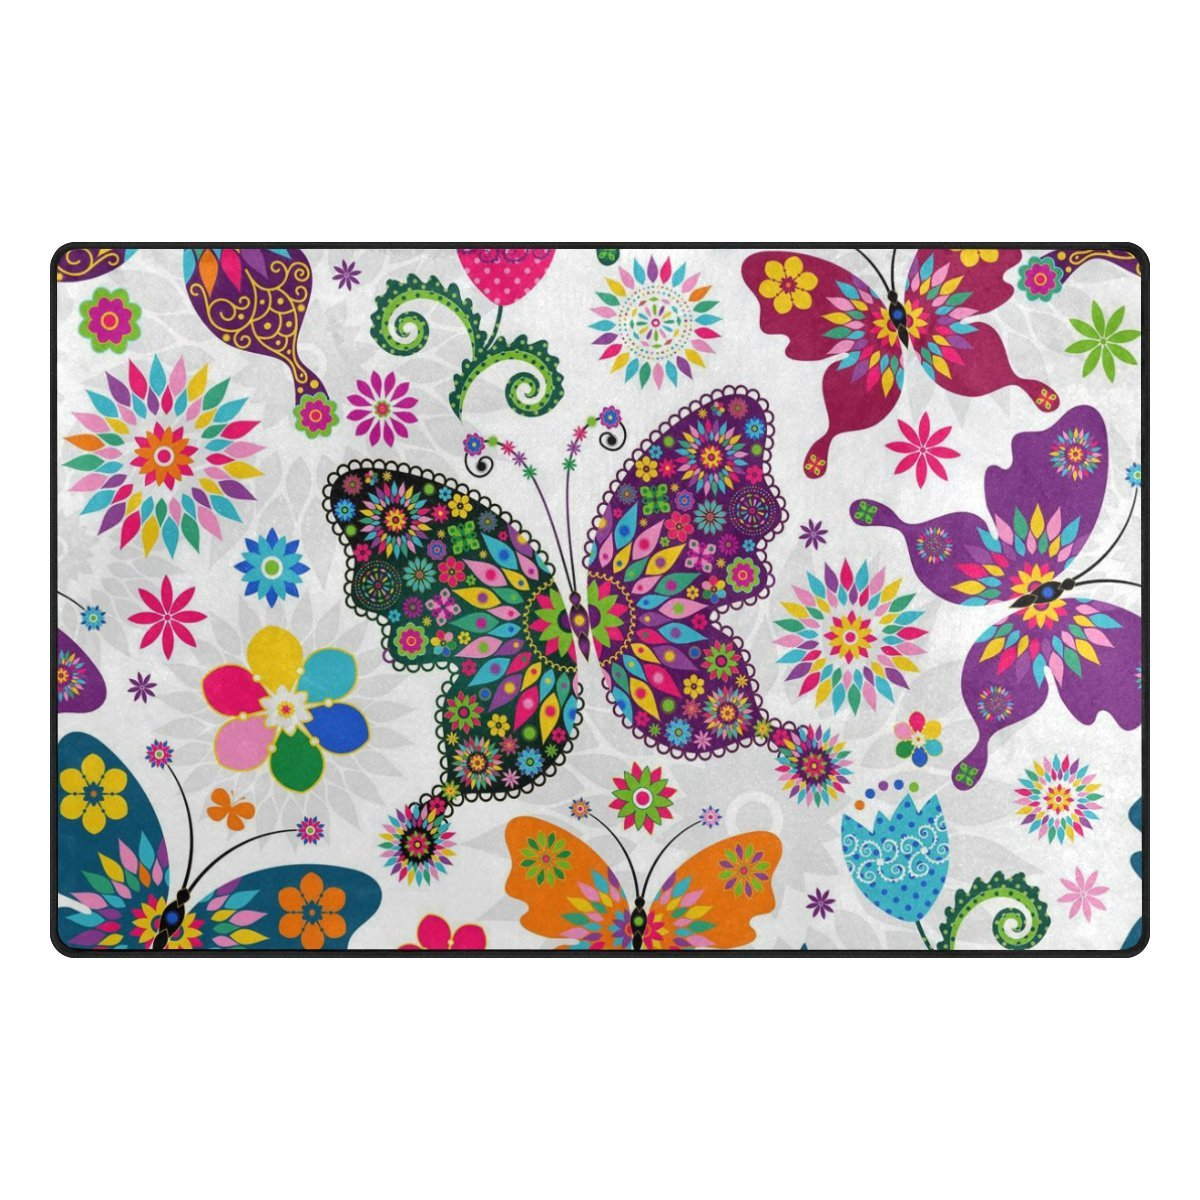 INGBAGS Super Soft Modern Butterfly Area Rugs Living Room Carpet Bedroom Rug for Children Play Solid Home Decorator Floor Rug and Carpets 31 x 20 Inch